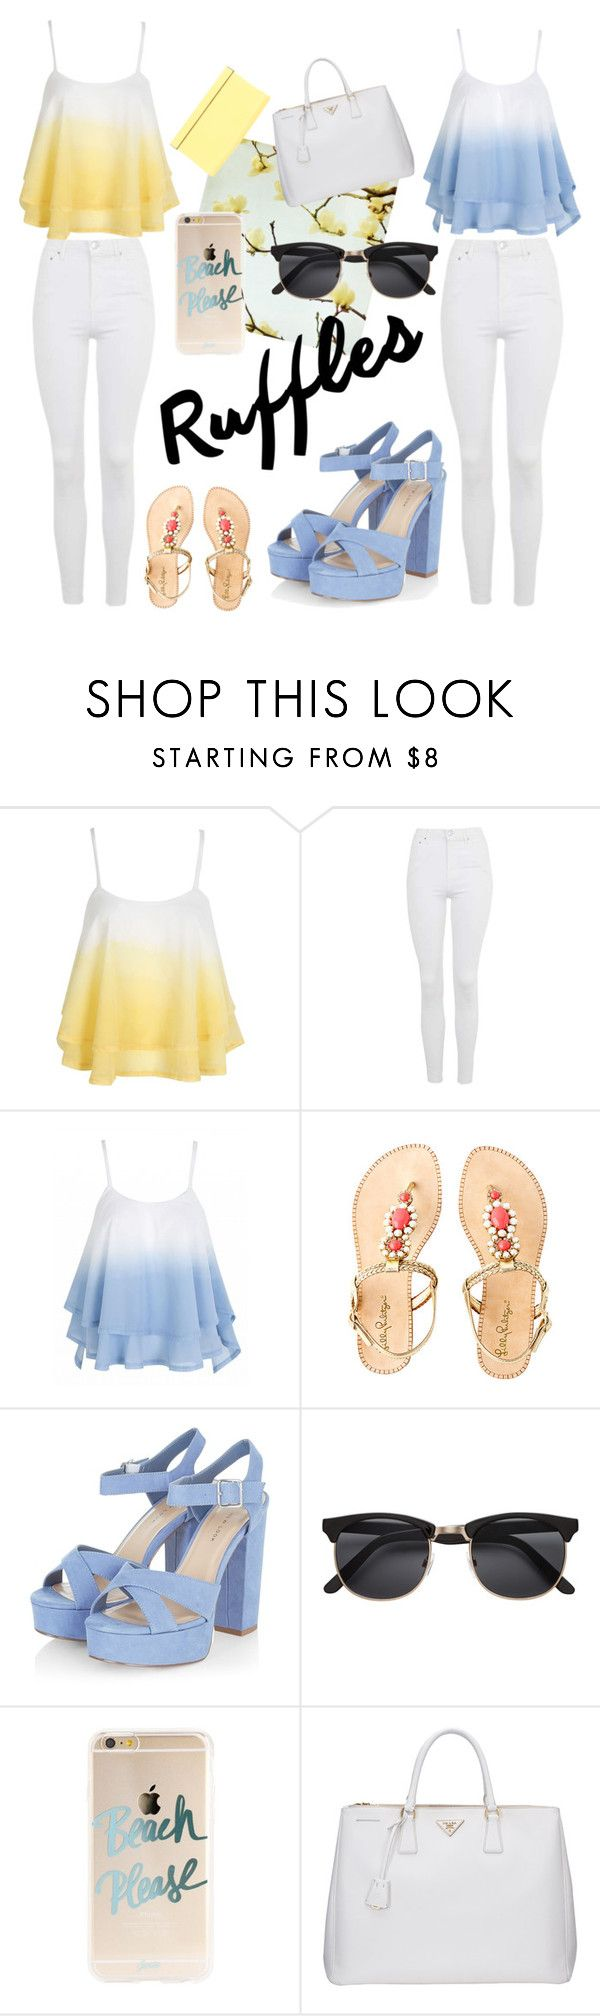 """Ruffles"" by bellaslife23 on Polyvore featuring WithChic, Topshop, Lilly Pulitzer, Prada, Jimmy Choo and ruffles"